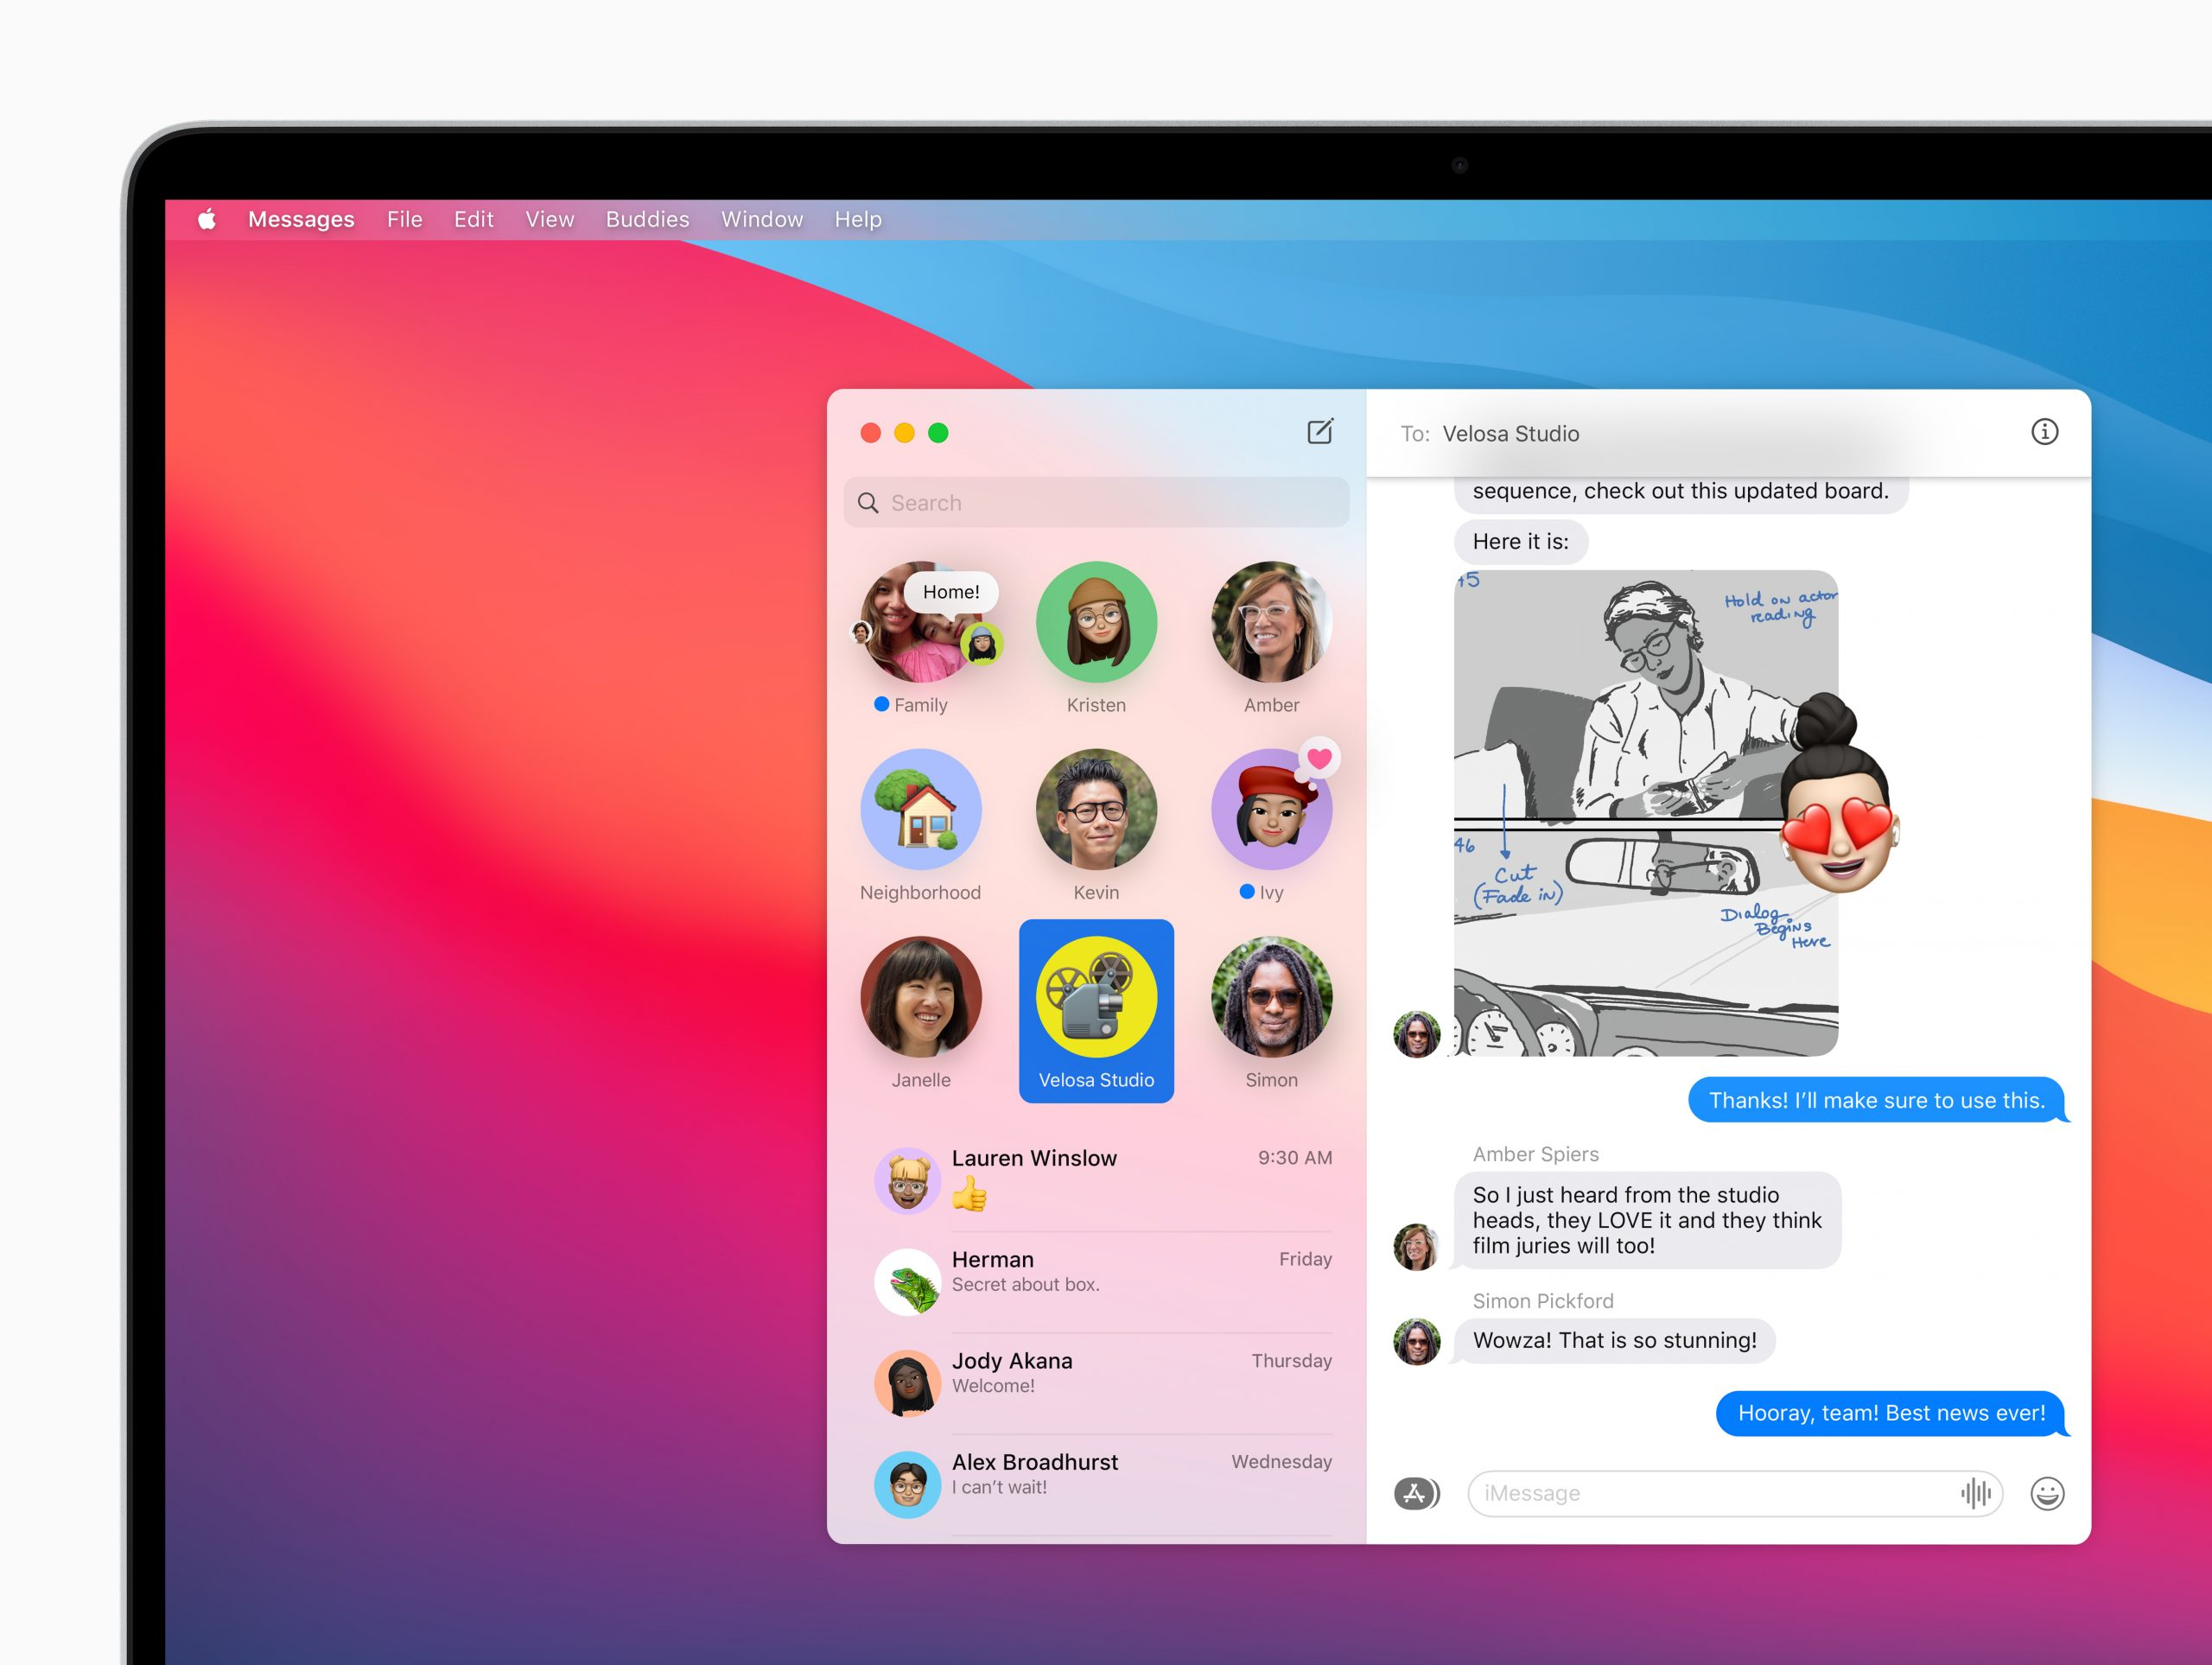 apple macos bigsur messages pnnedconversations 06222020 1 scaled